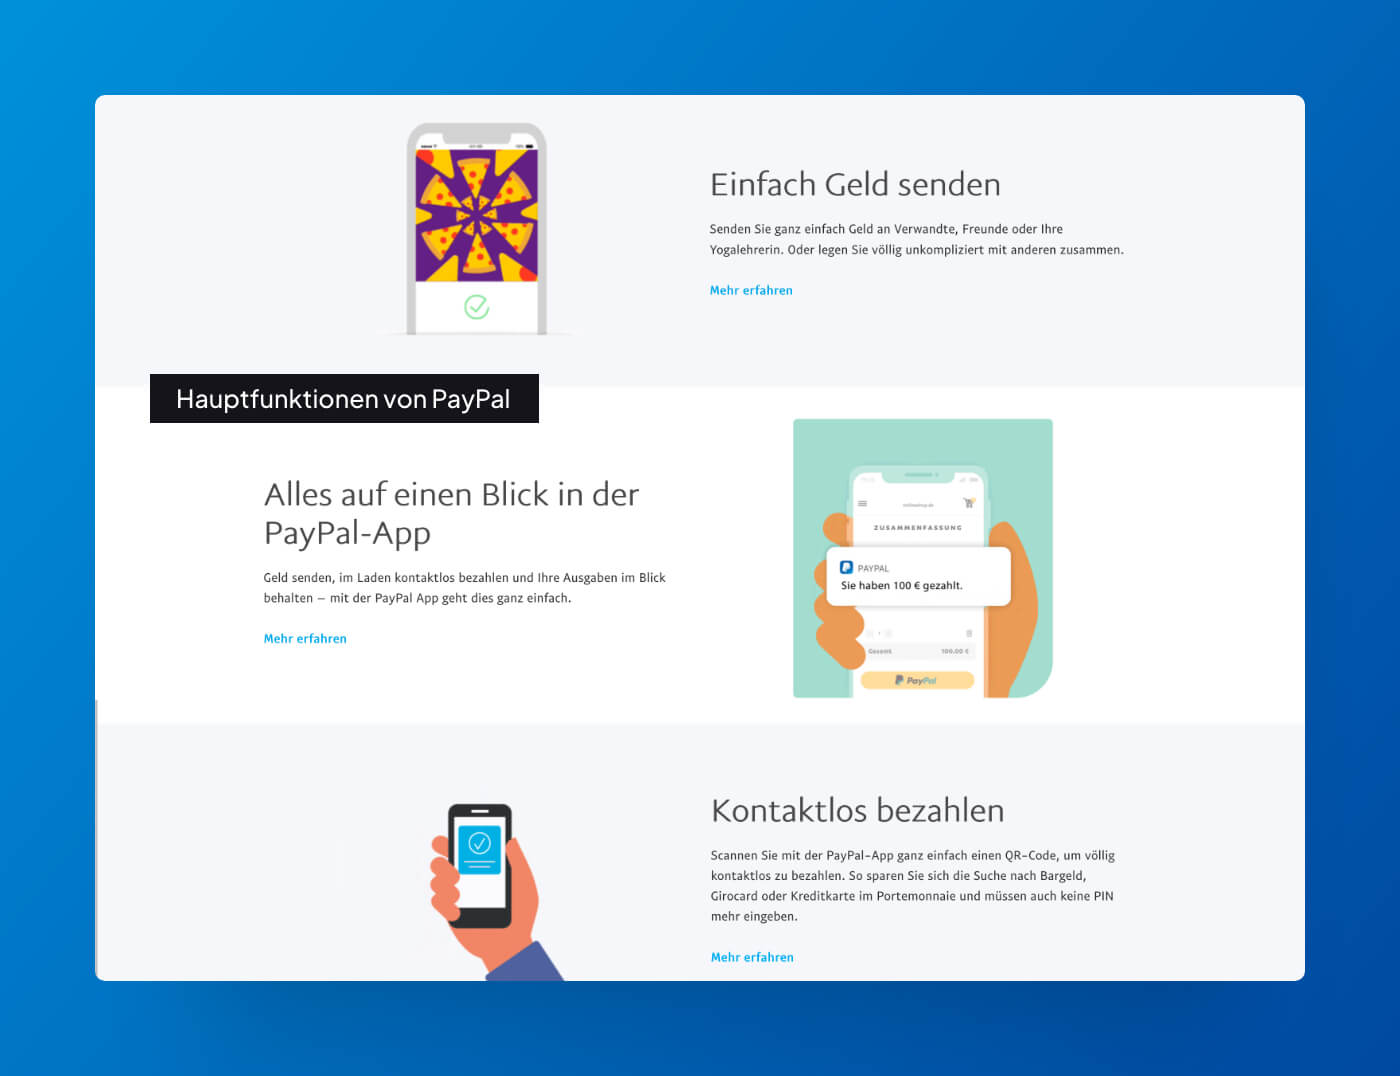 Website Screenshot of paypal.com which shows the main product features.